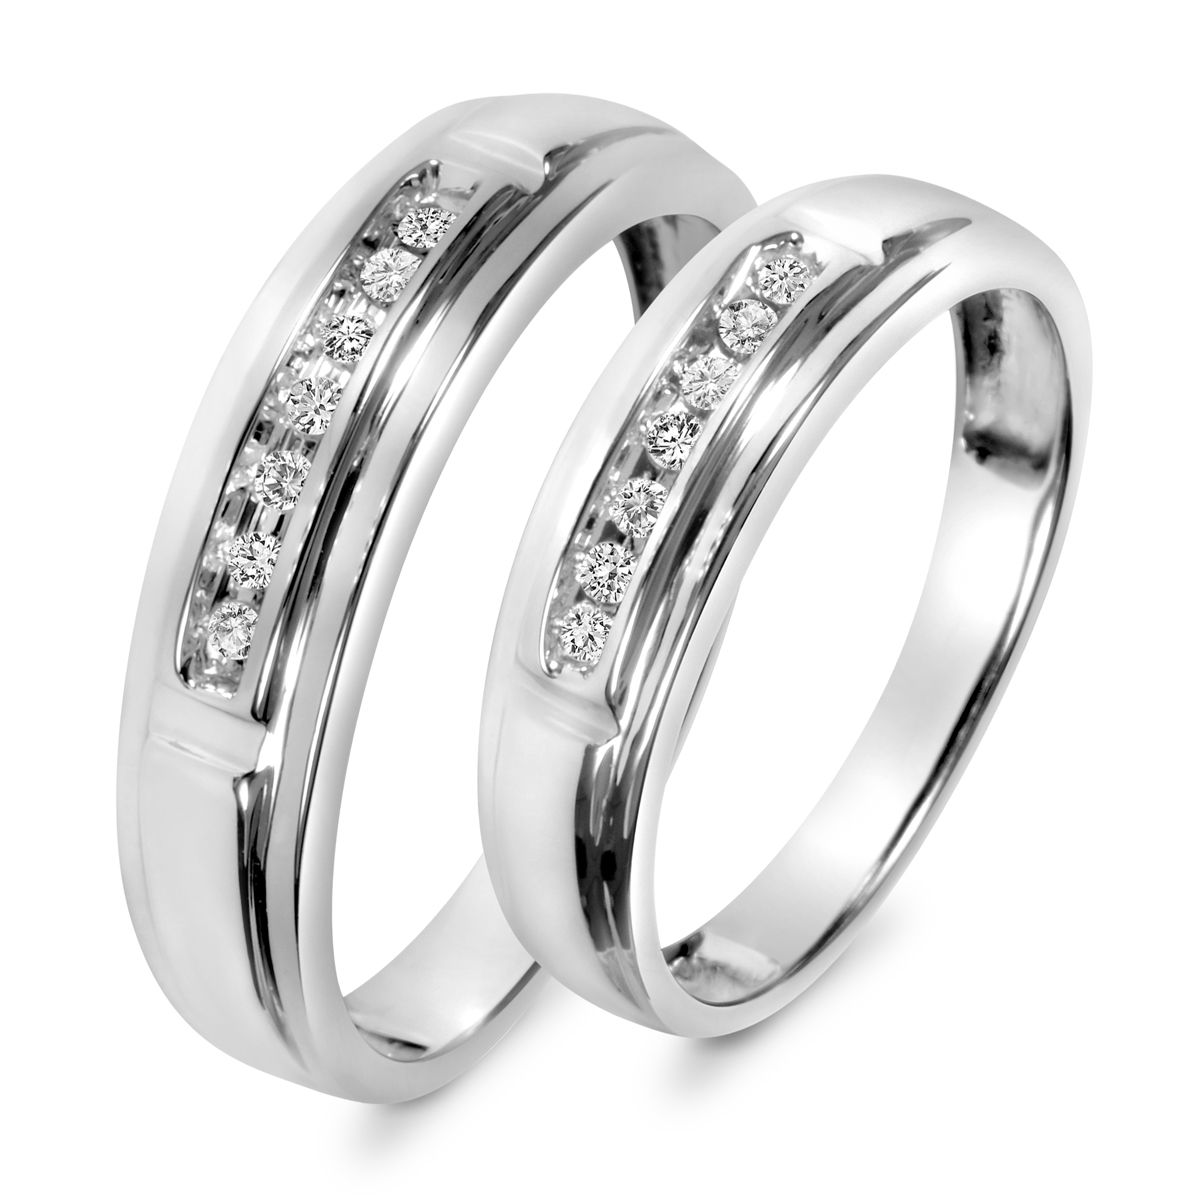 1 8 Carat T W Diamond His And Hers Matching Ringswedding